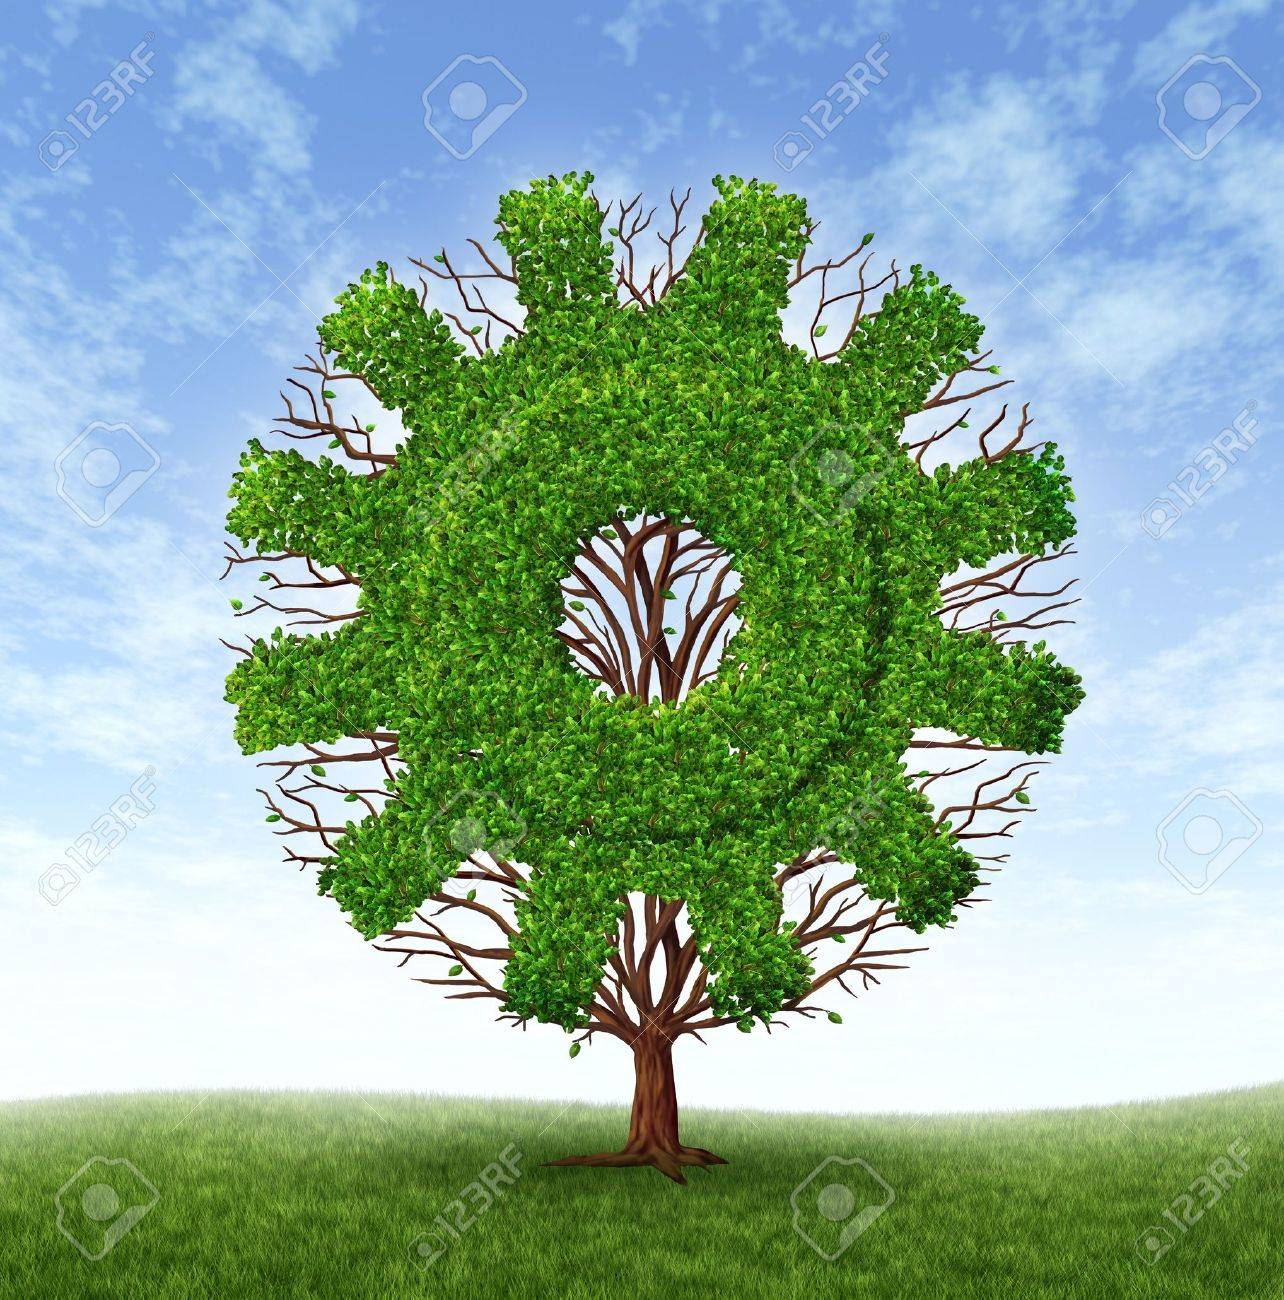 Growing business concept with a tree and branches with leaves in the shape of a machine gear or cog as an industrial symbol of financial success through investment and leadership on a blue sky Stock Photo - 12882225